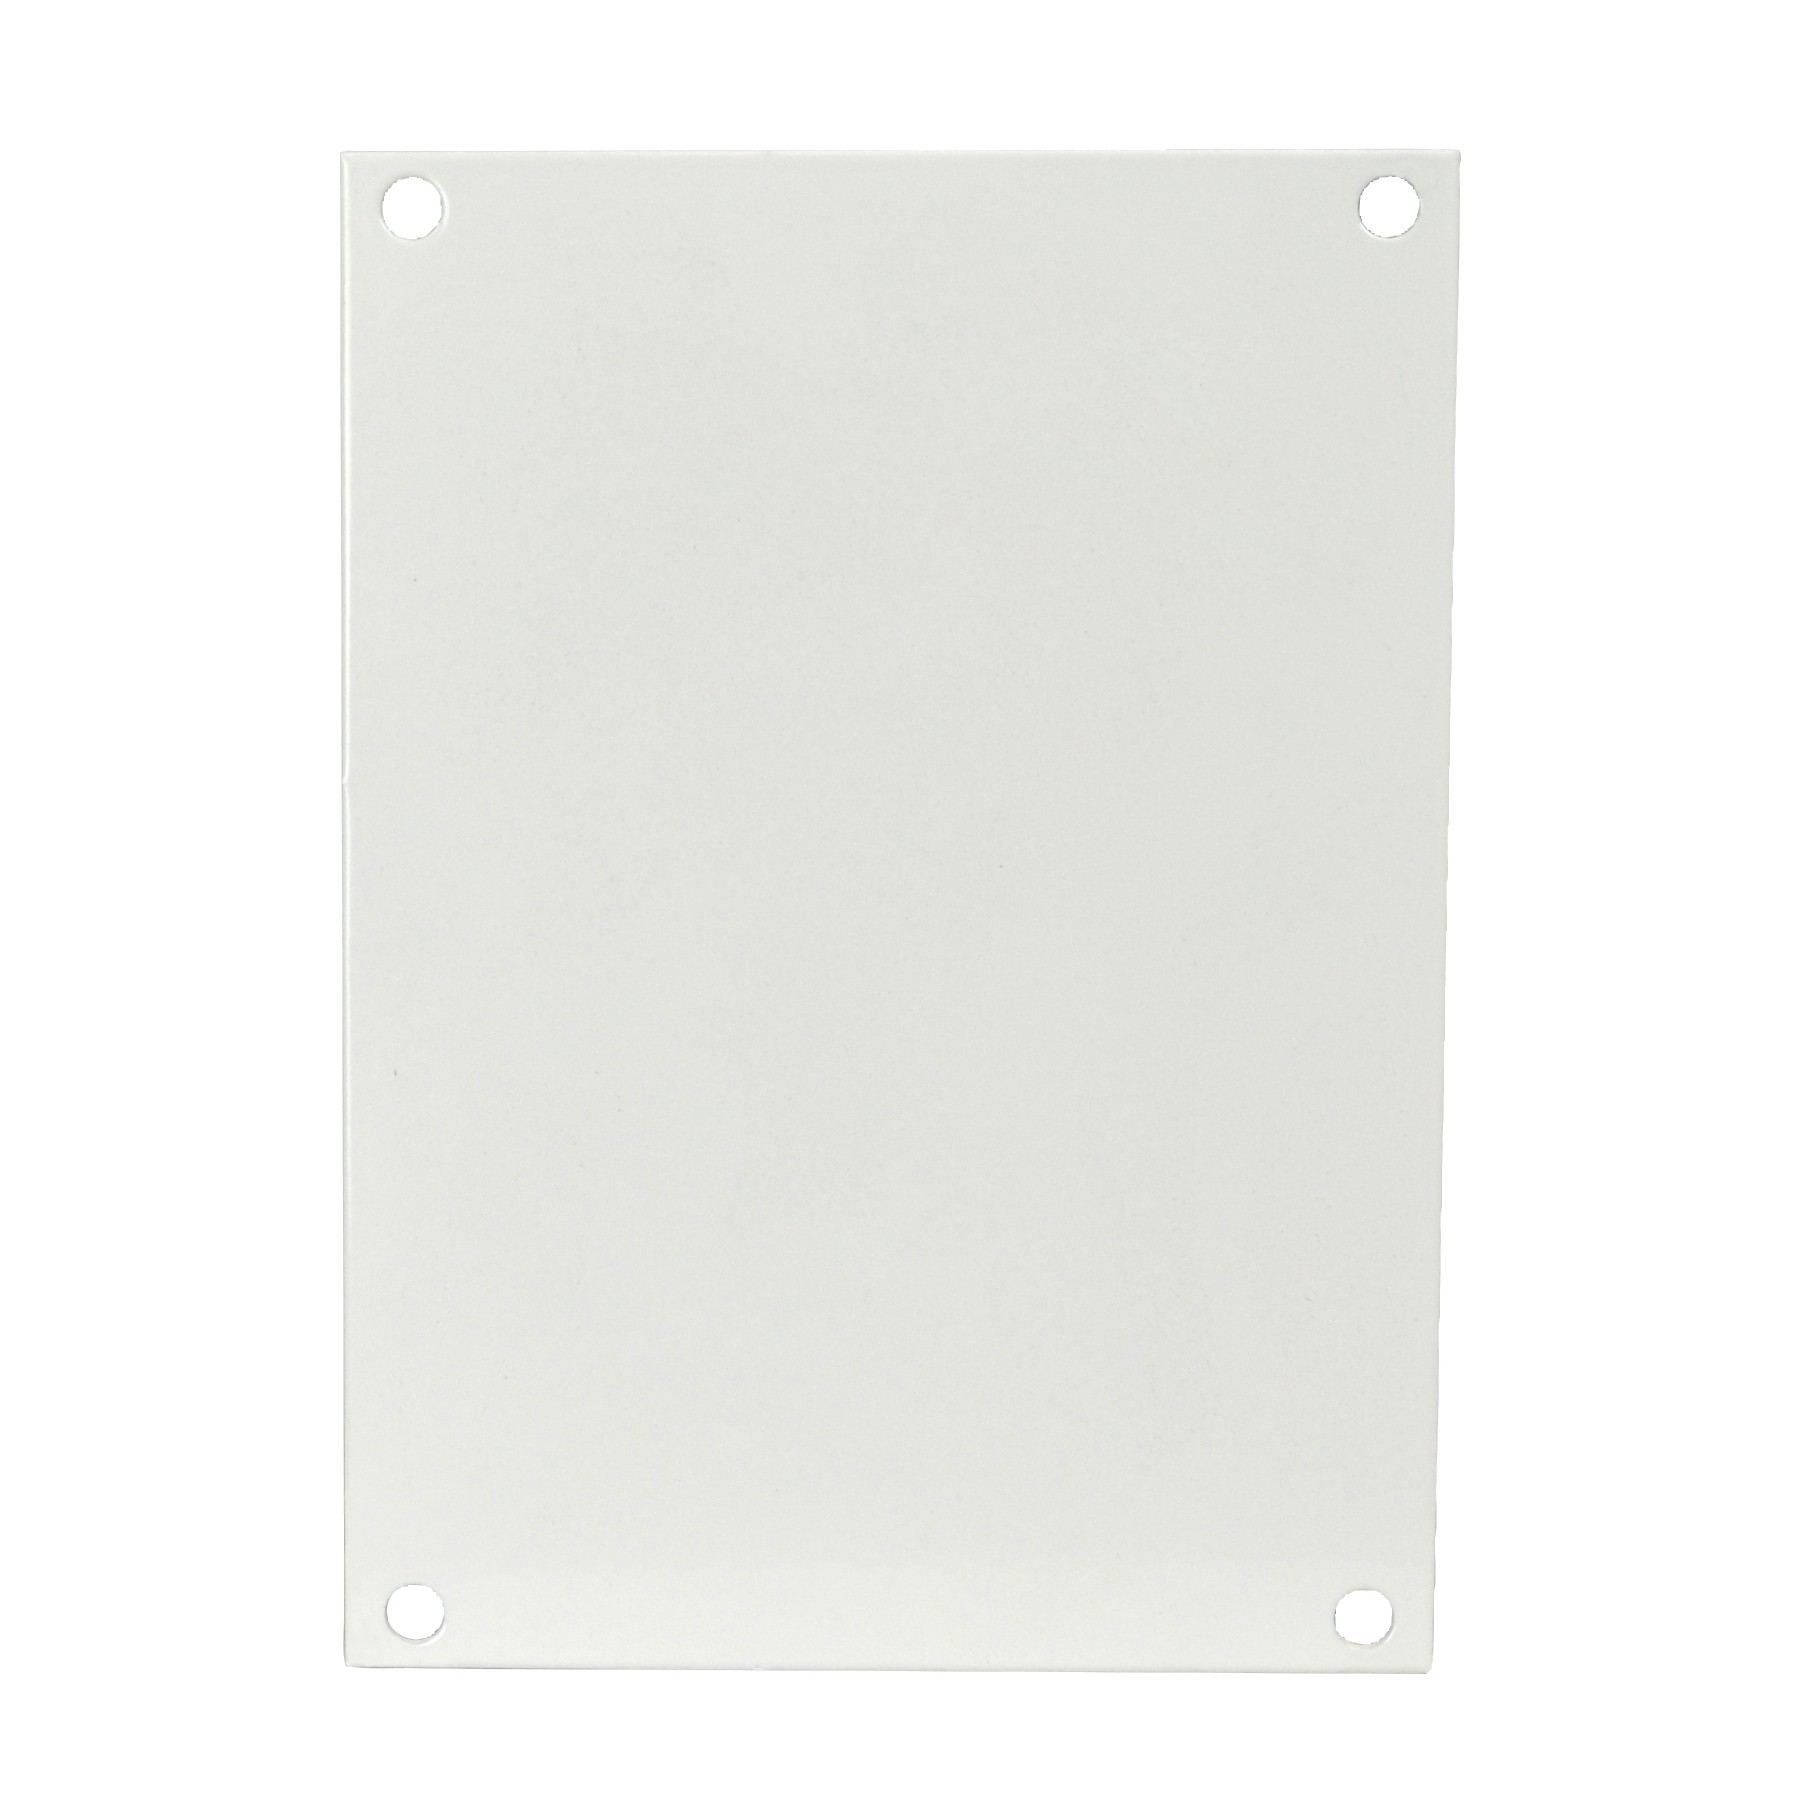 P120 - Carbon Steel Enclosure Back Panel Kit